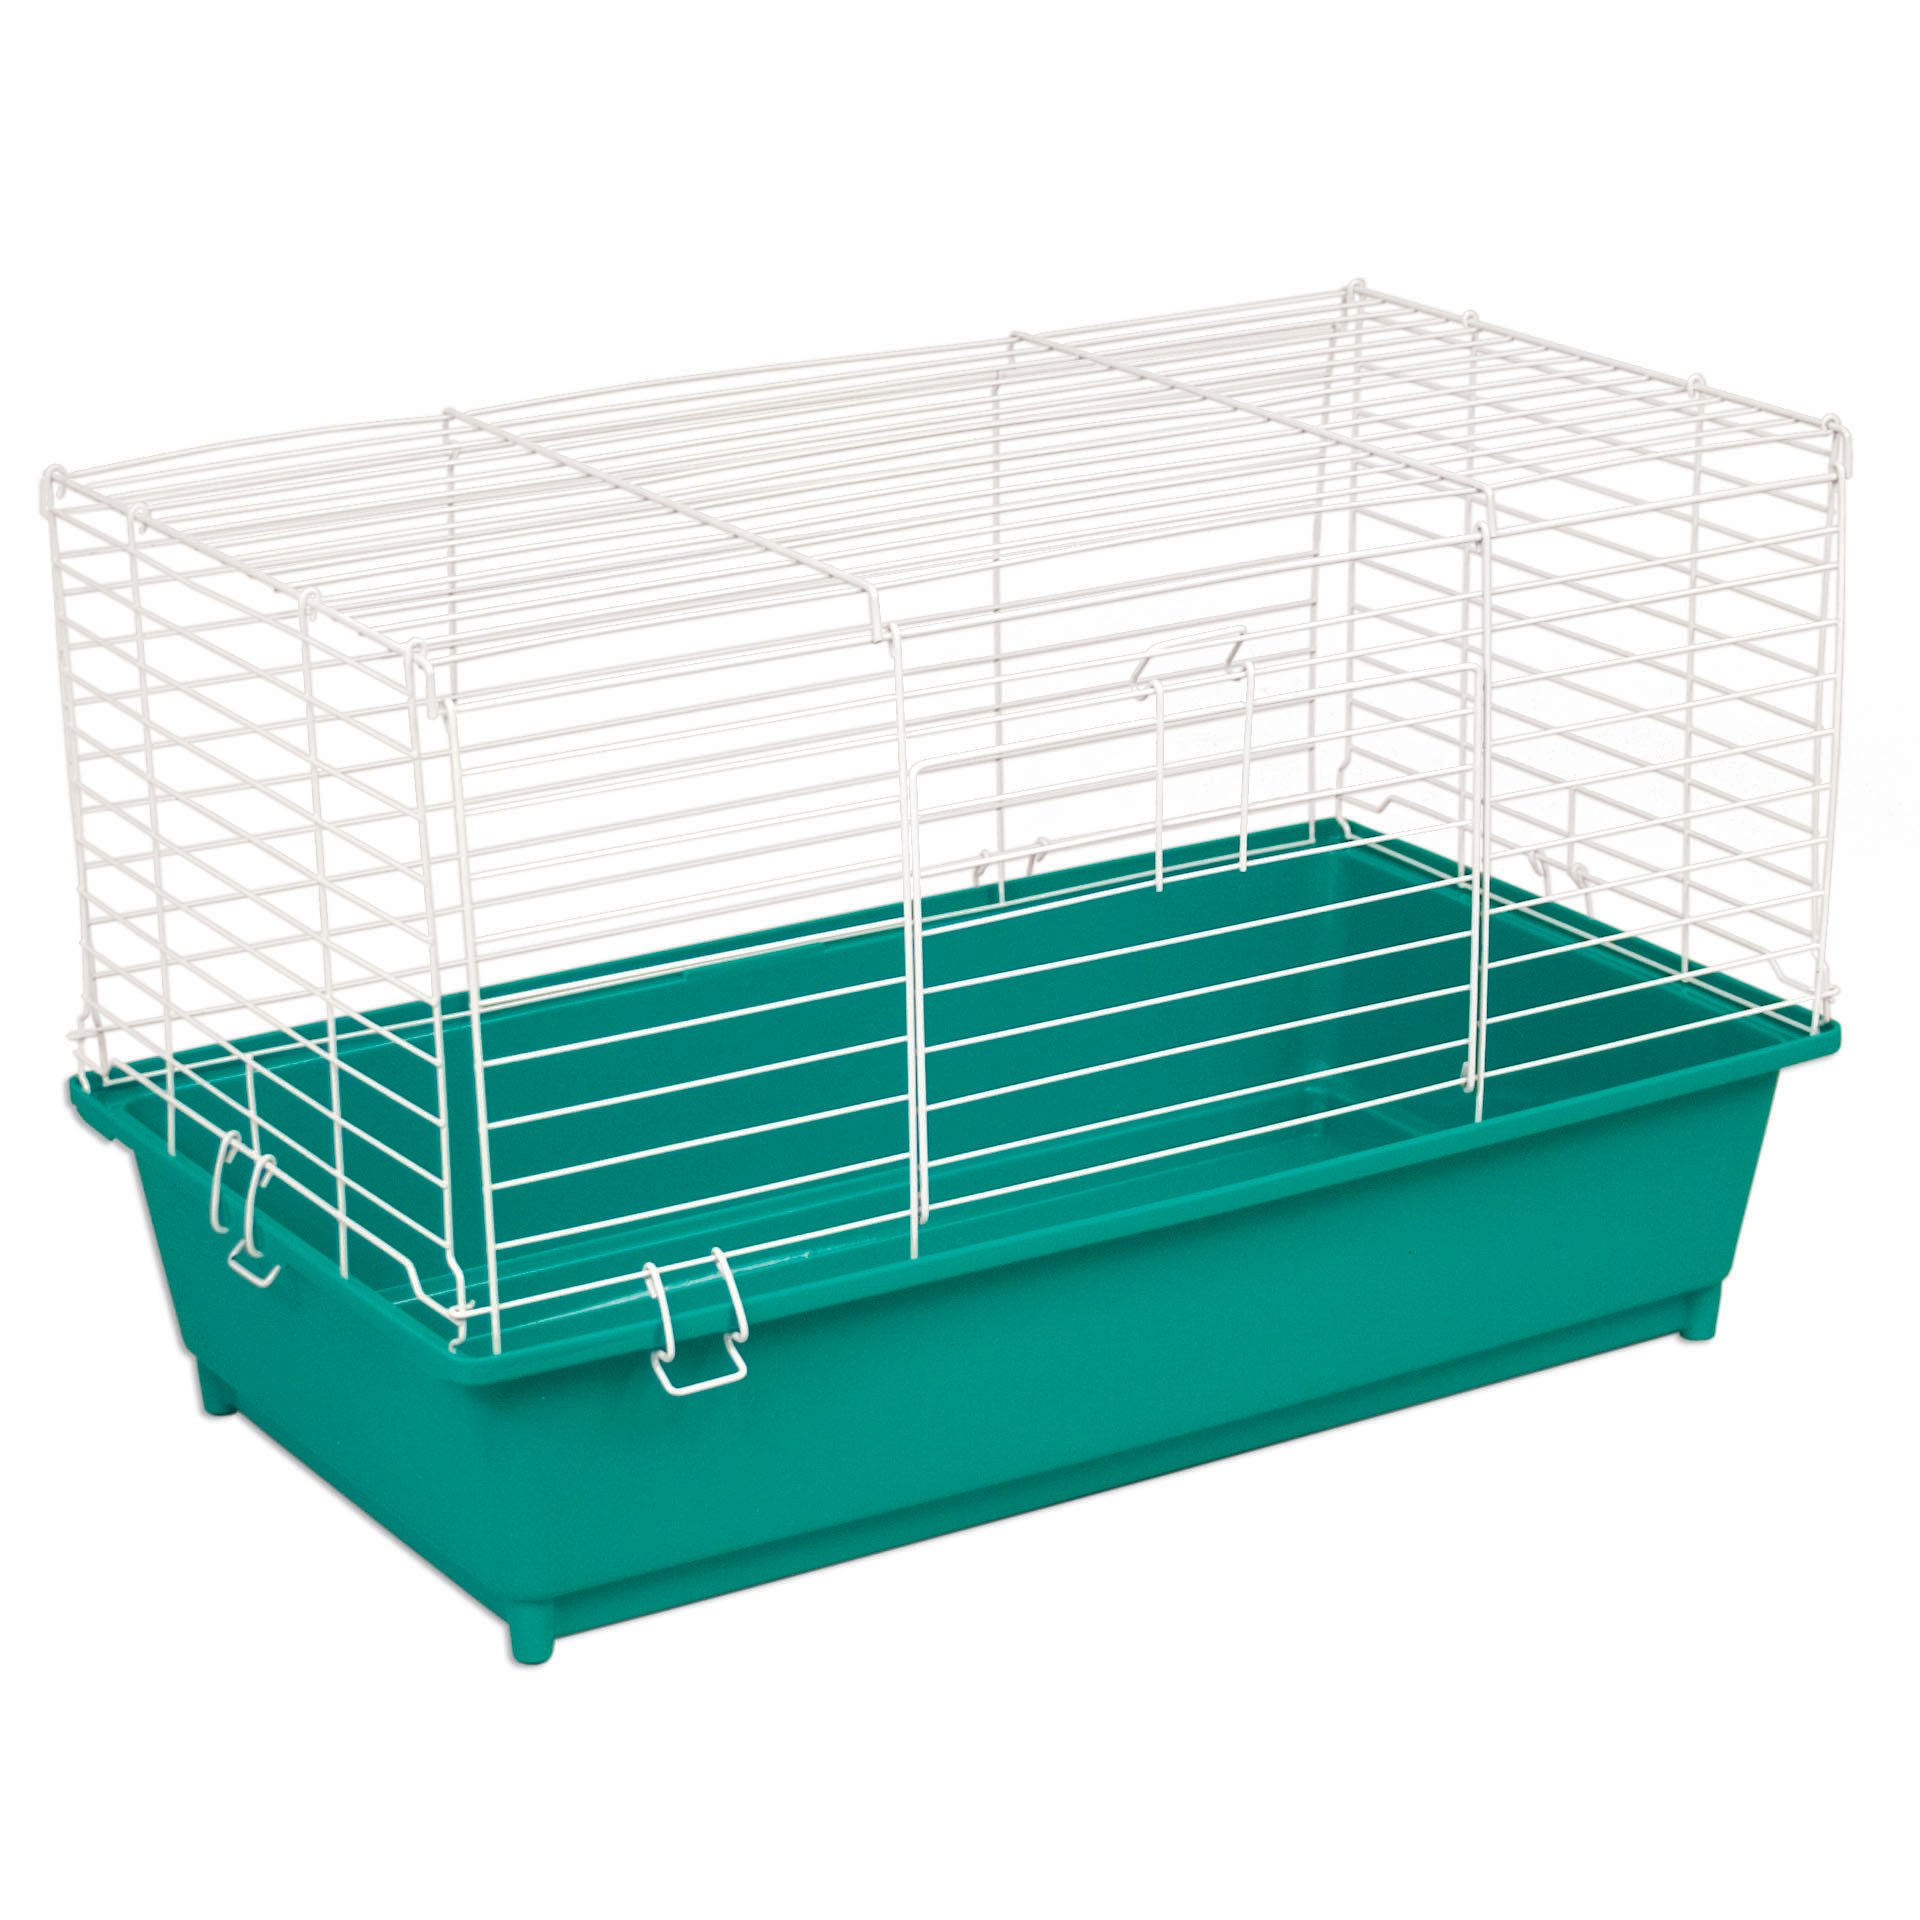 Ware Manufacturing Home Sweet Home Pet Cage for Small Animals - 24 Inches - Colors may vary